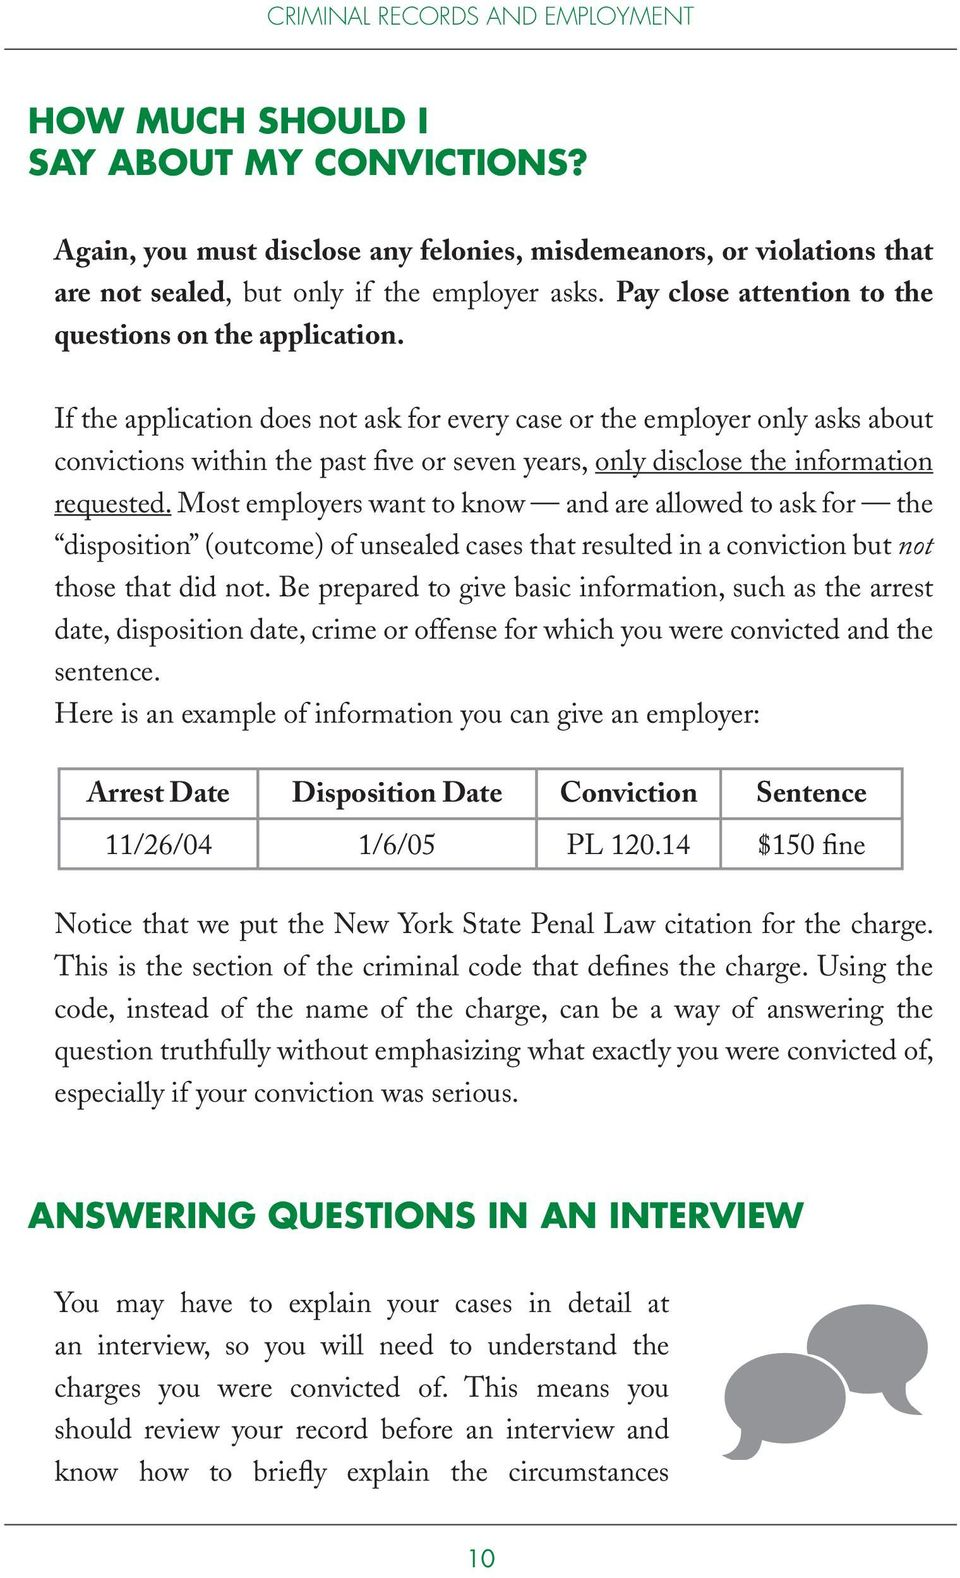 If the application does not ask for every case or the employer only asks about convictions within the past five or seven years, only disclose the information requested.